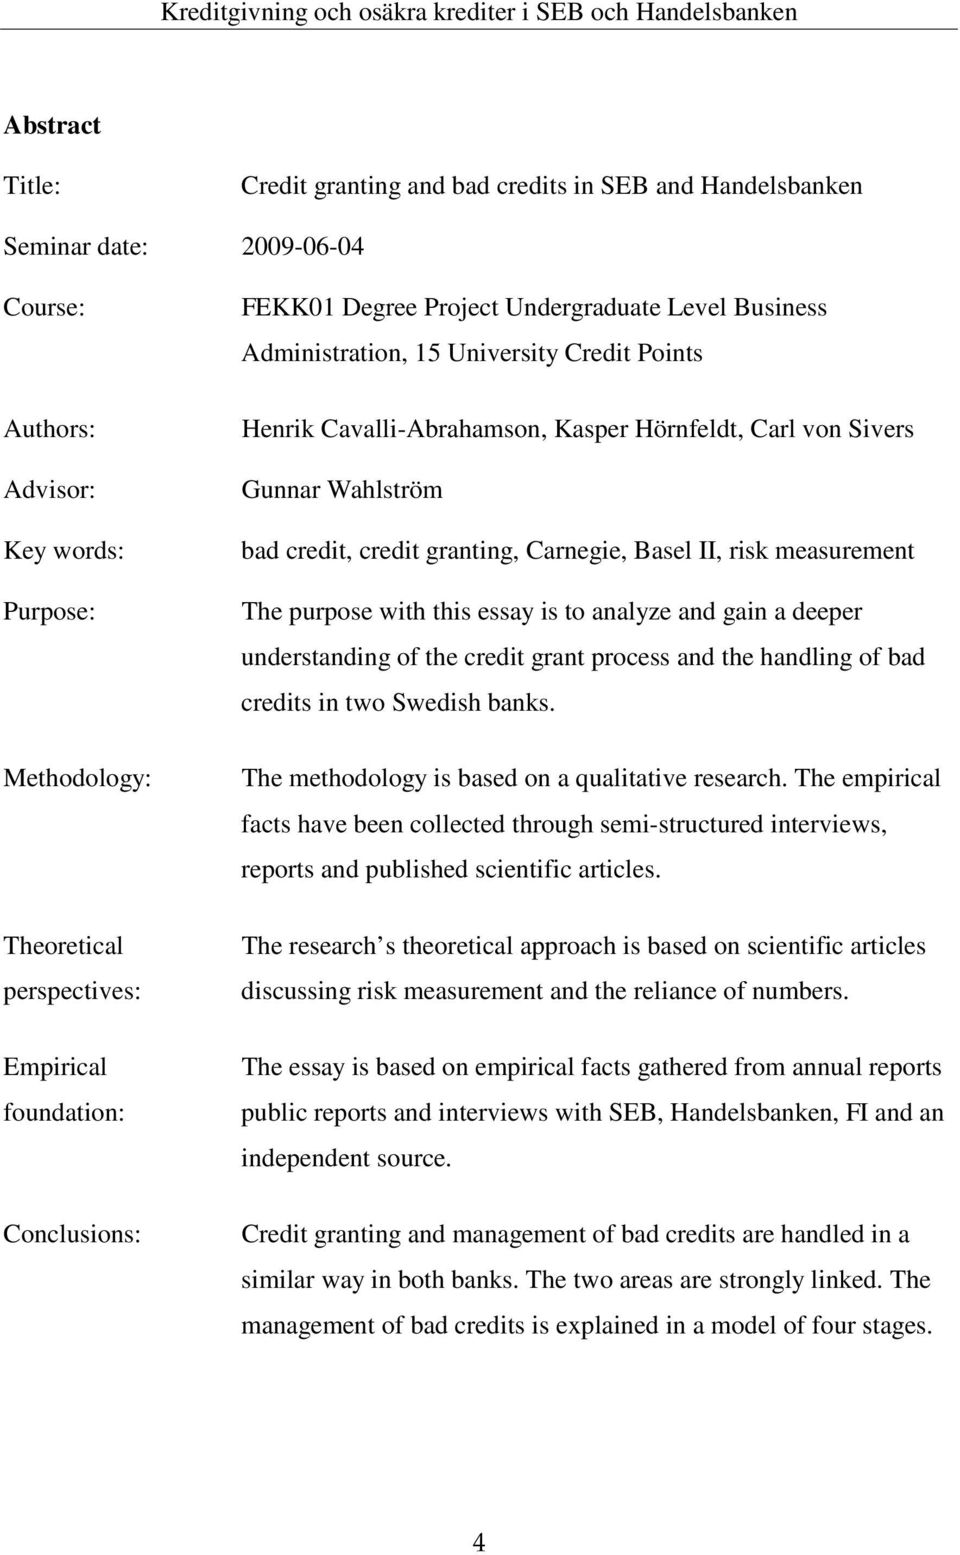 bad credit, credit granting, Carnegie, Basel II, risk measurement The purpose with this essay is to analyze and gain a deeper understanding of the credit grant process and the handling of bad credits